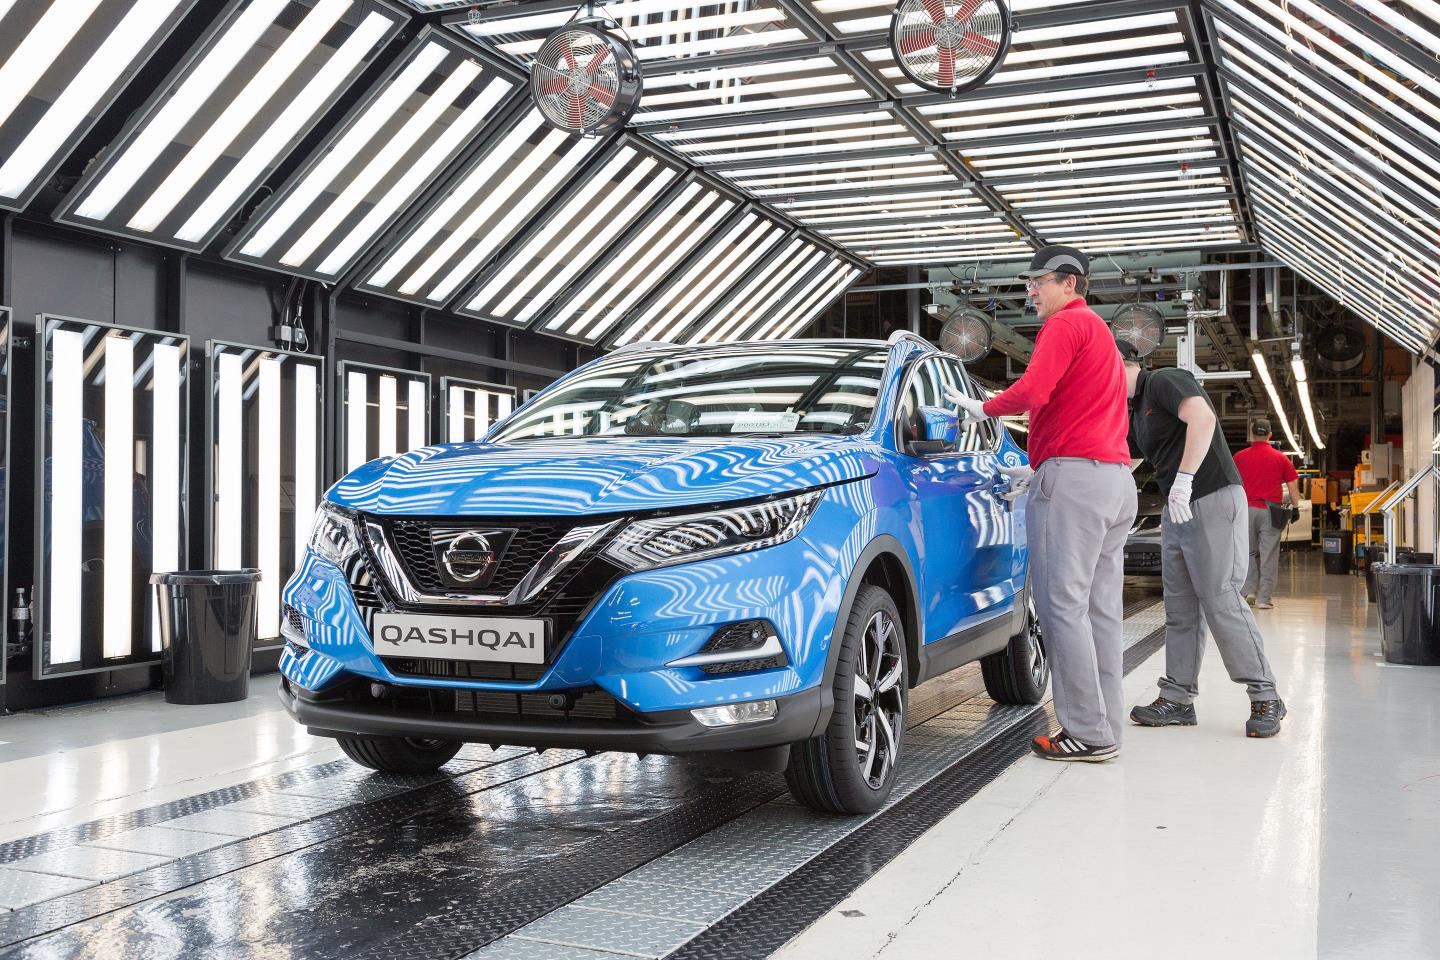 2017 Nissan Qashqai Facelift Now In Production At